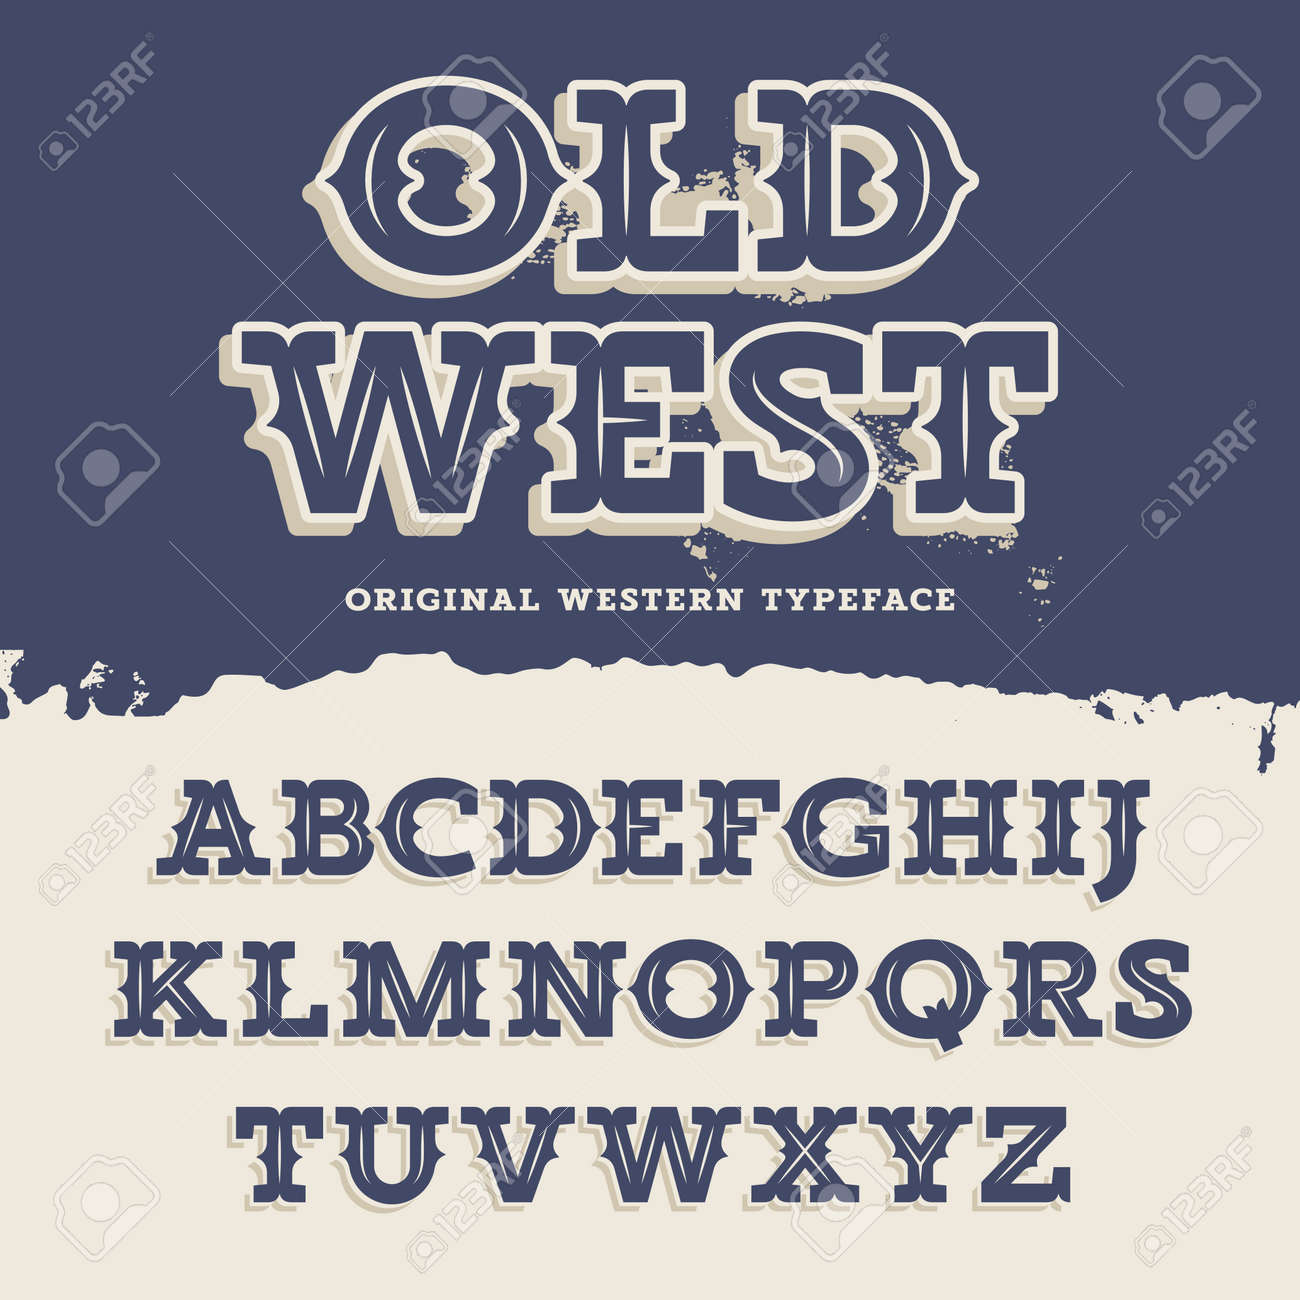 Old West Typeface Retro Alphabet In Western Style Slab Serif Type Letters On A